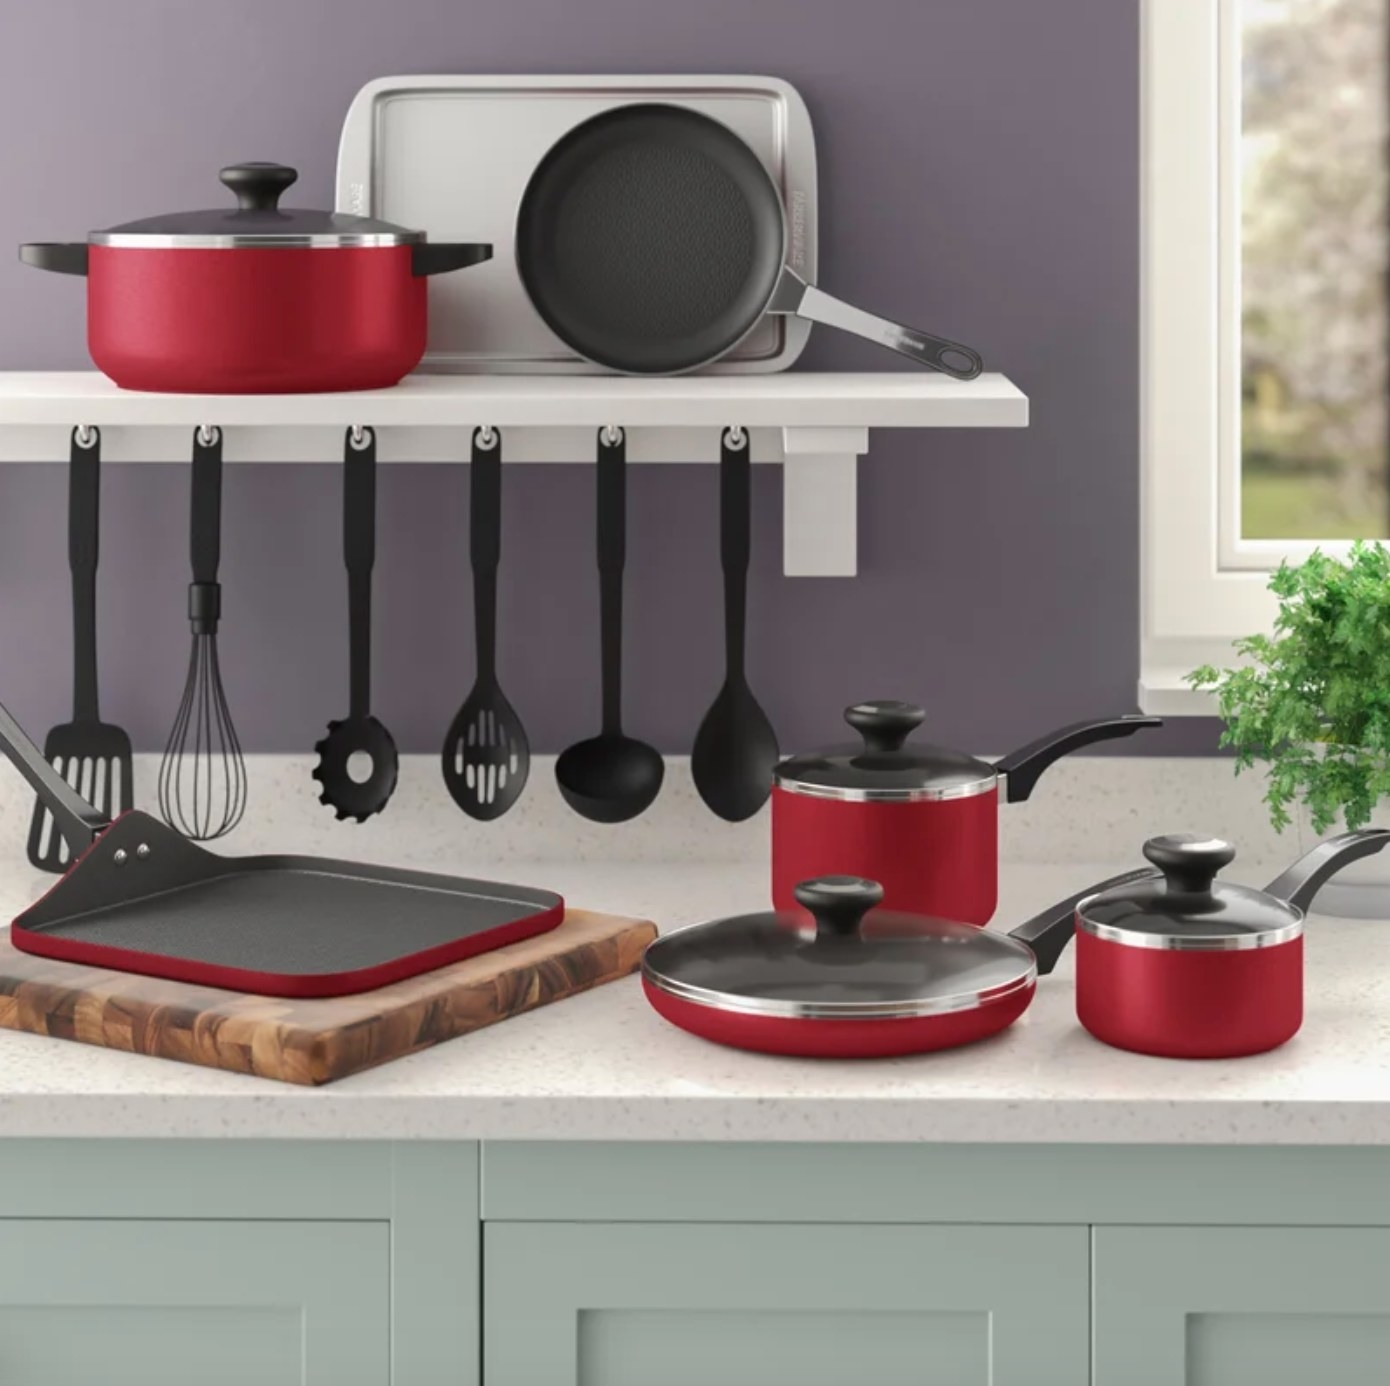 The 17 piece cookware set in red